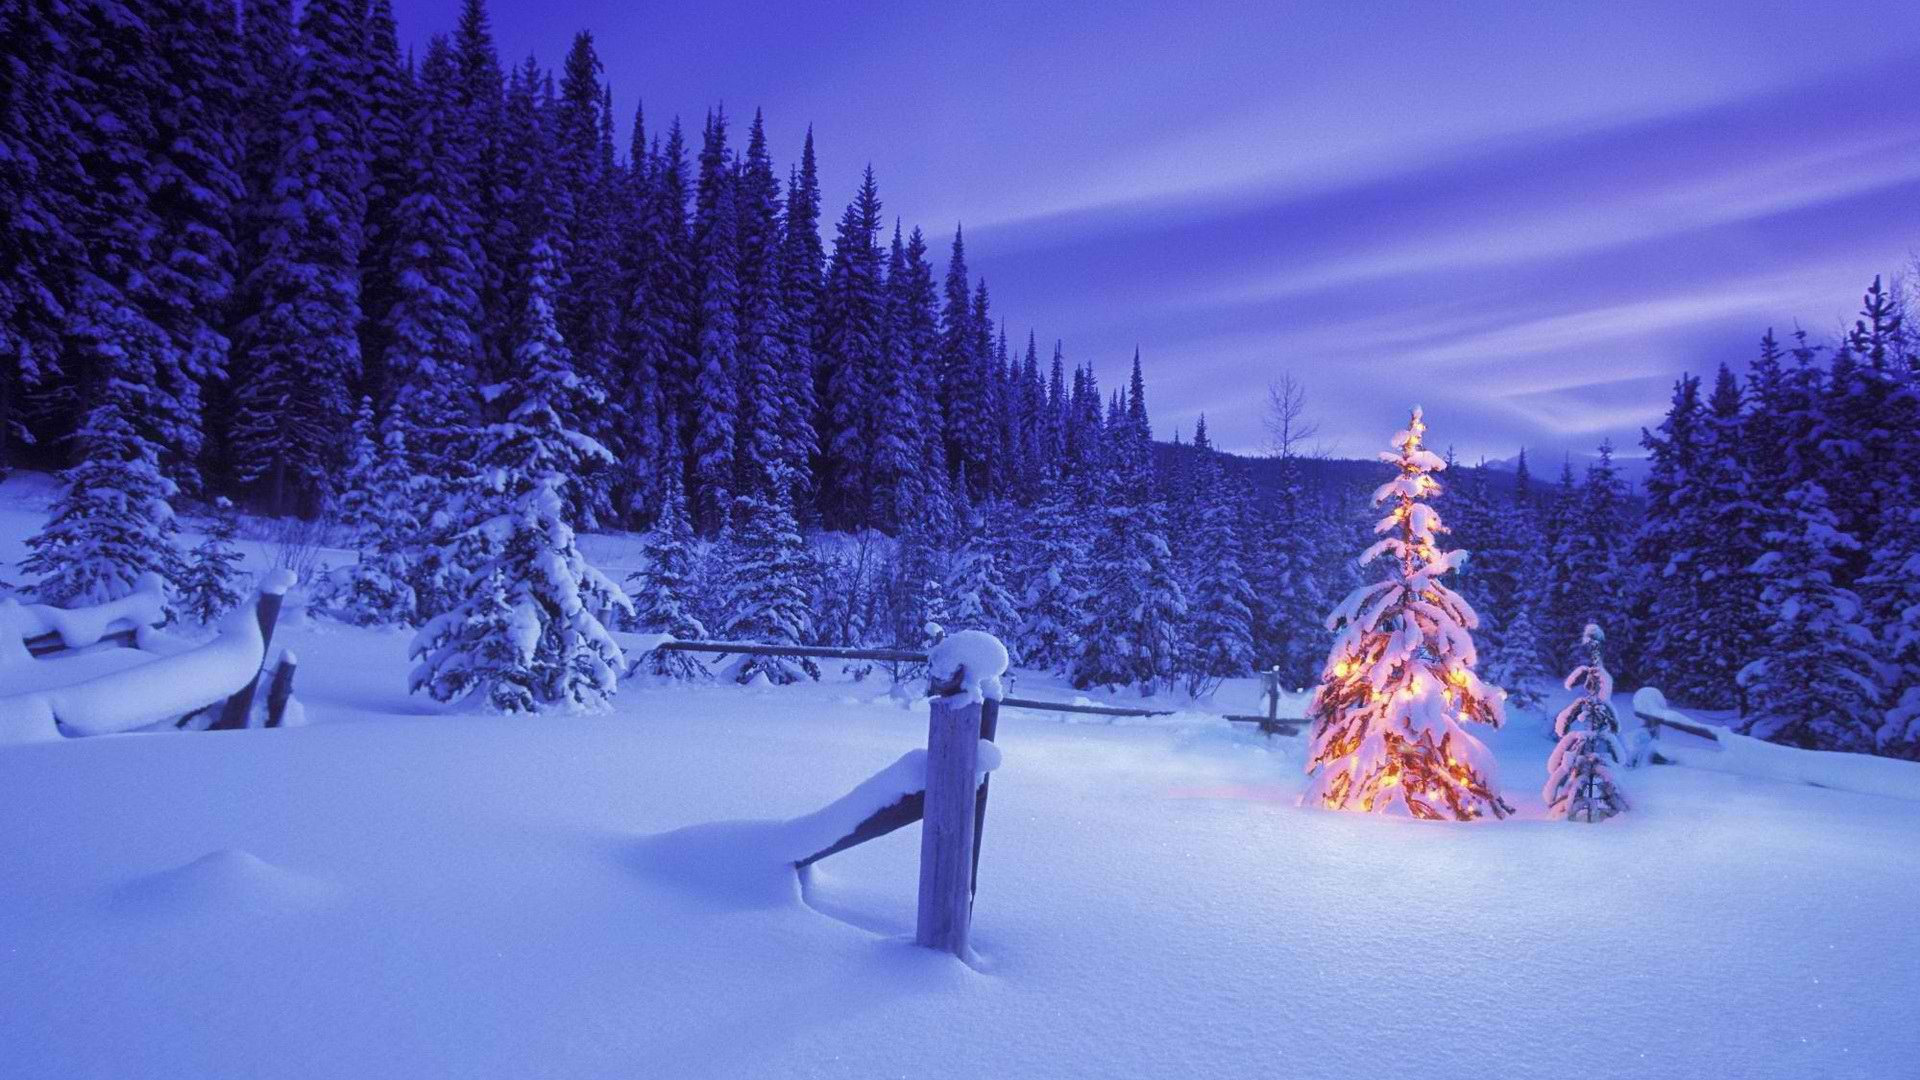 Free Christmas Wallpaper Nice Christmas Images GZHaixieR